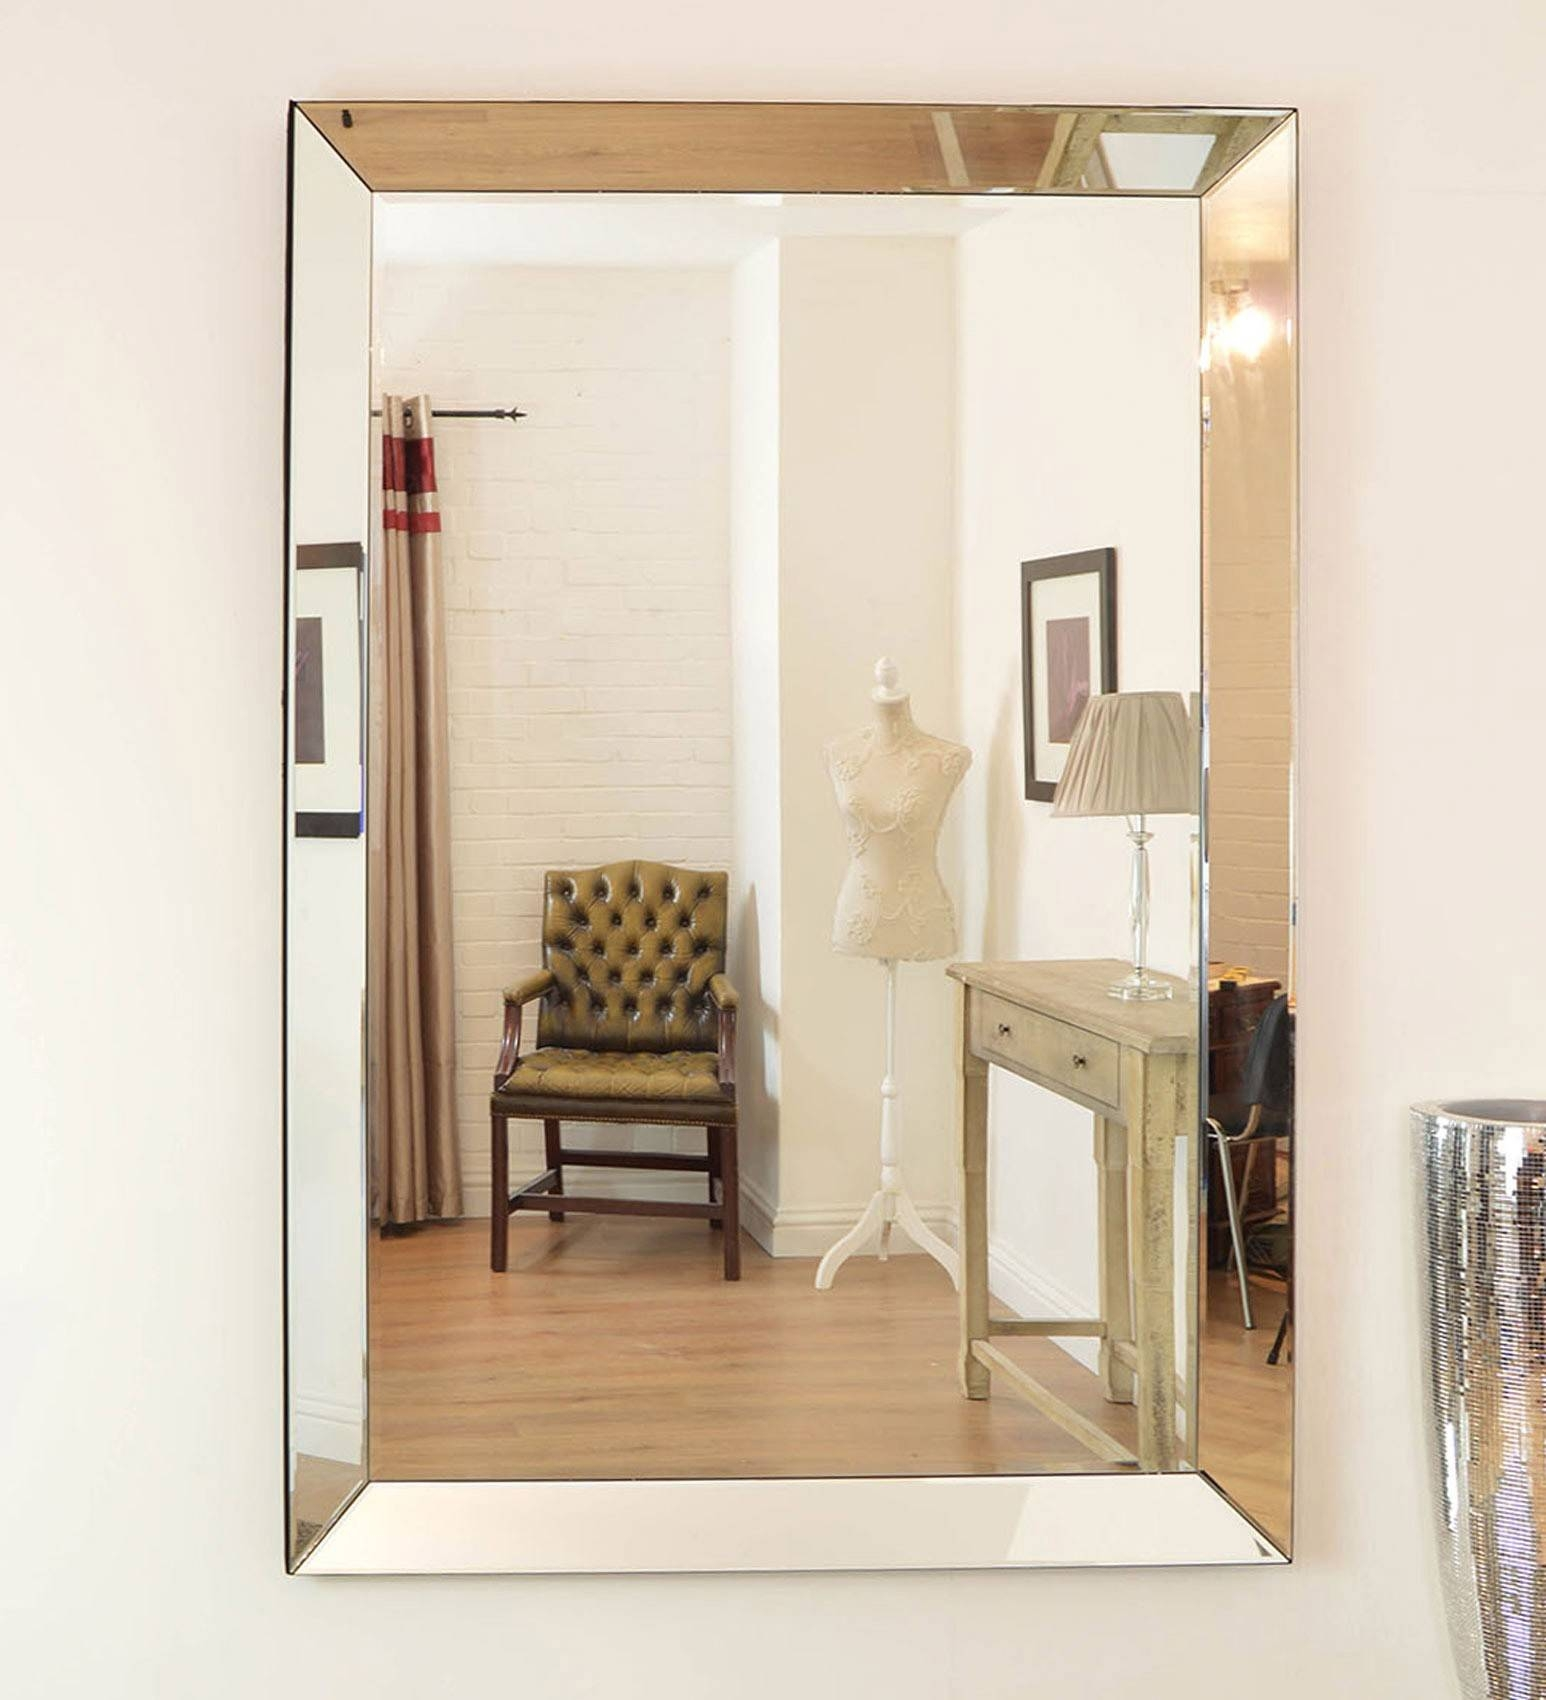 Frameless Wall Mirror Design And Ideas | Vwho inside Large Frameless Wall Mirrors (Image 3 of 25)